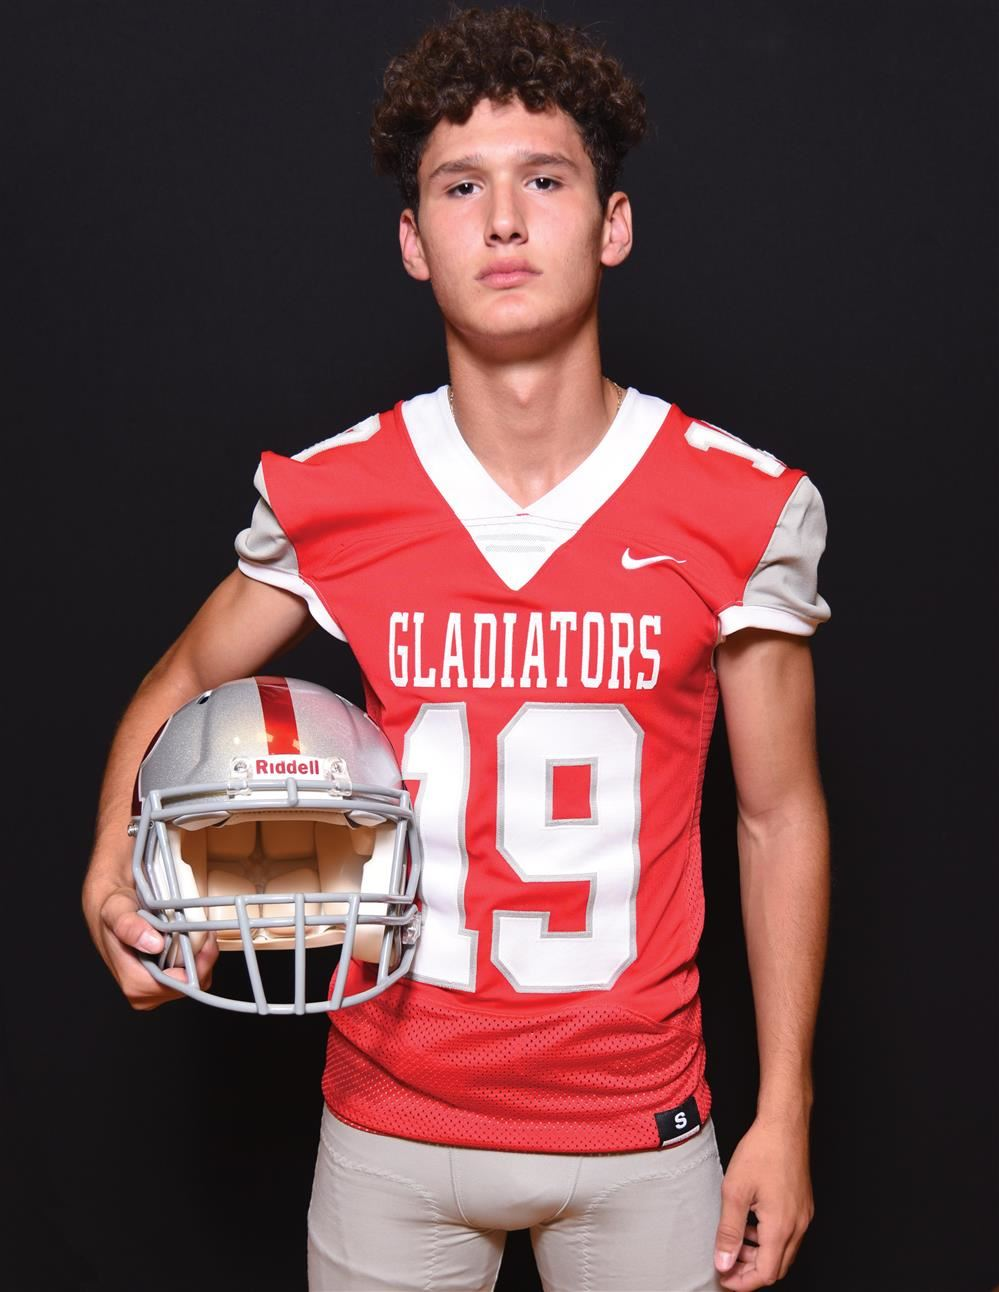 Roma High Student Selected as All-State High School Football Player